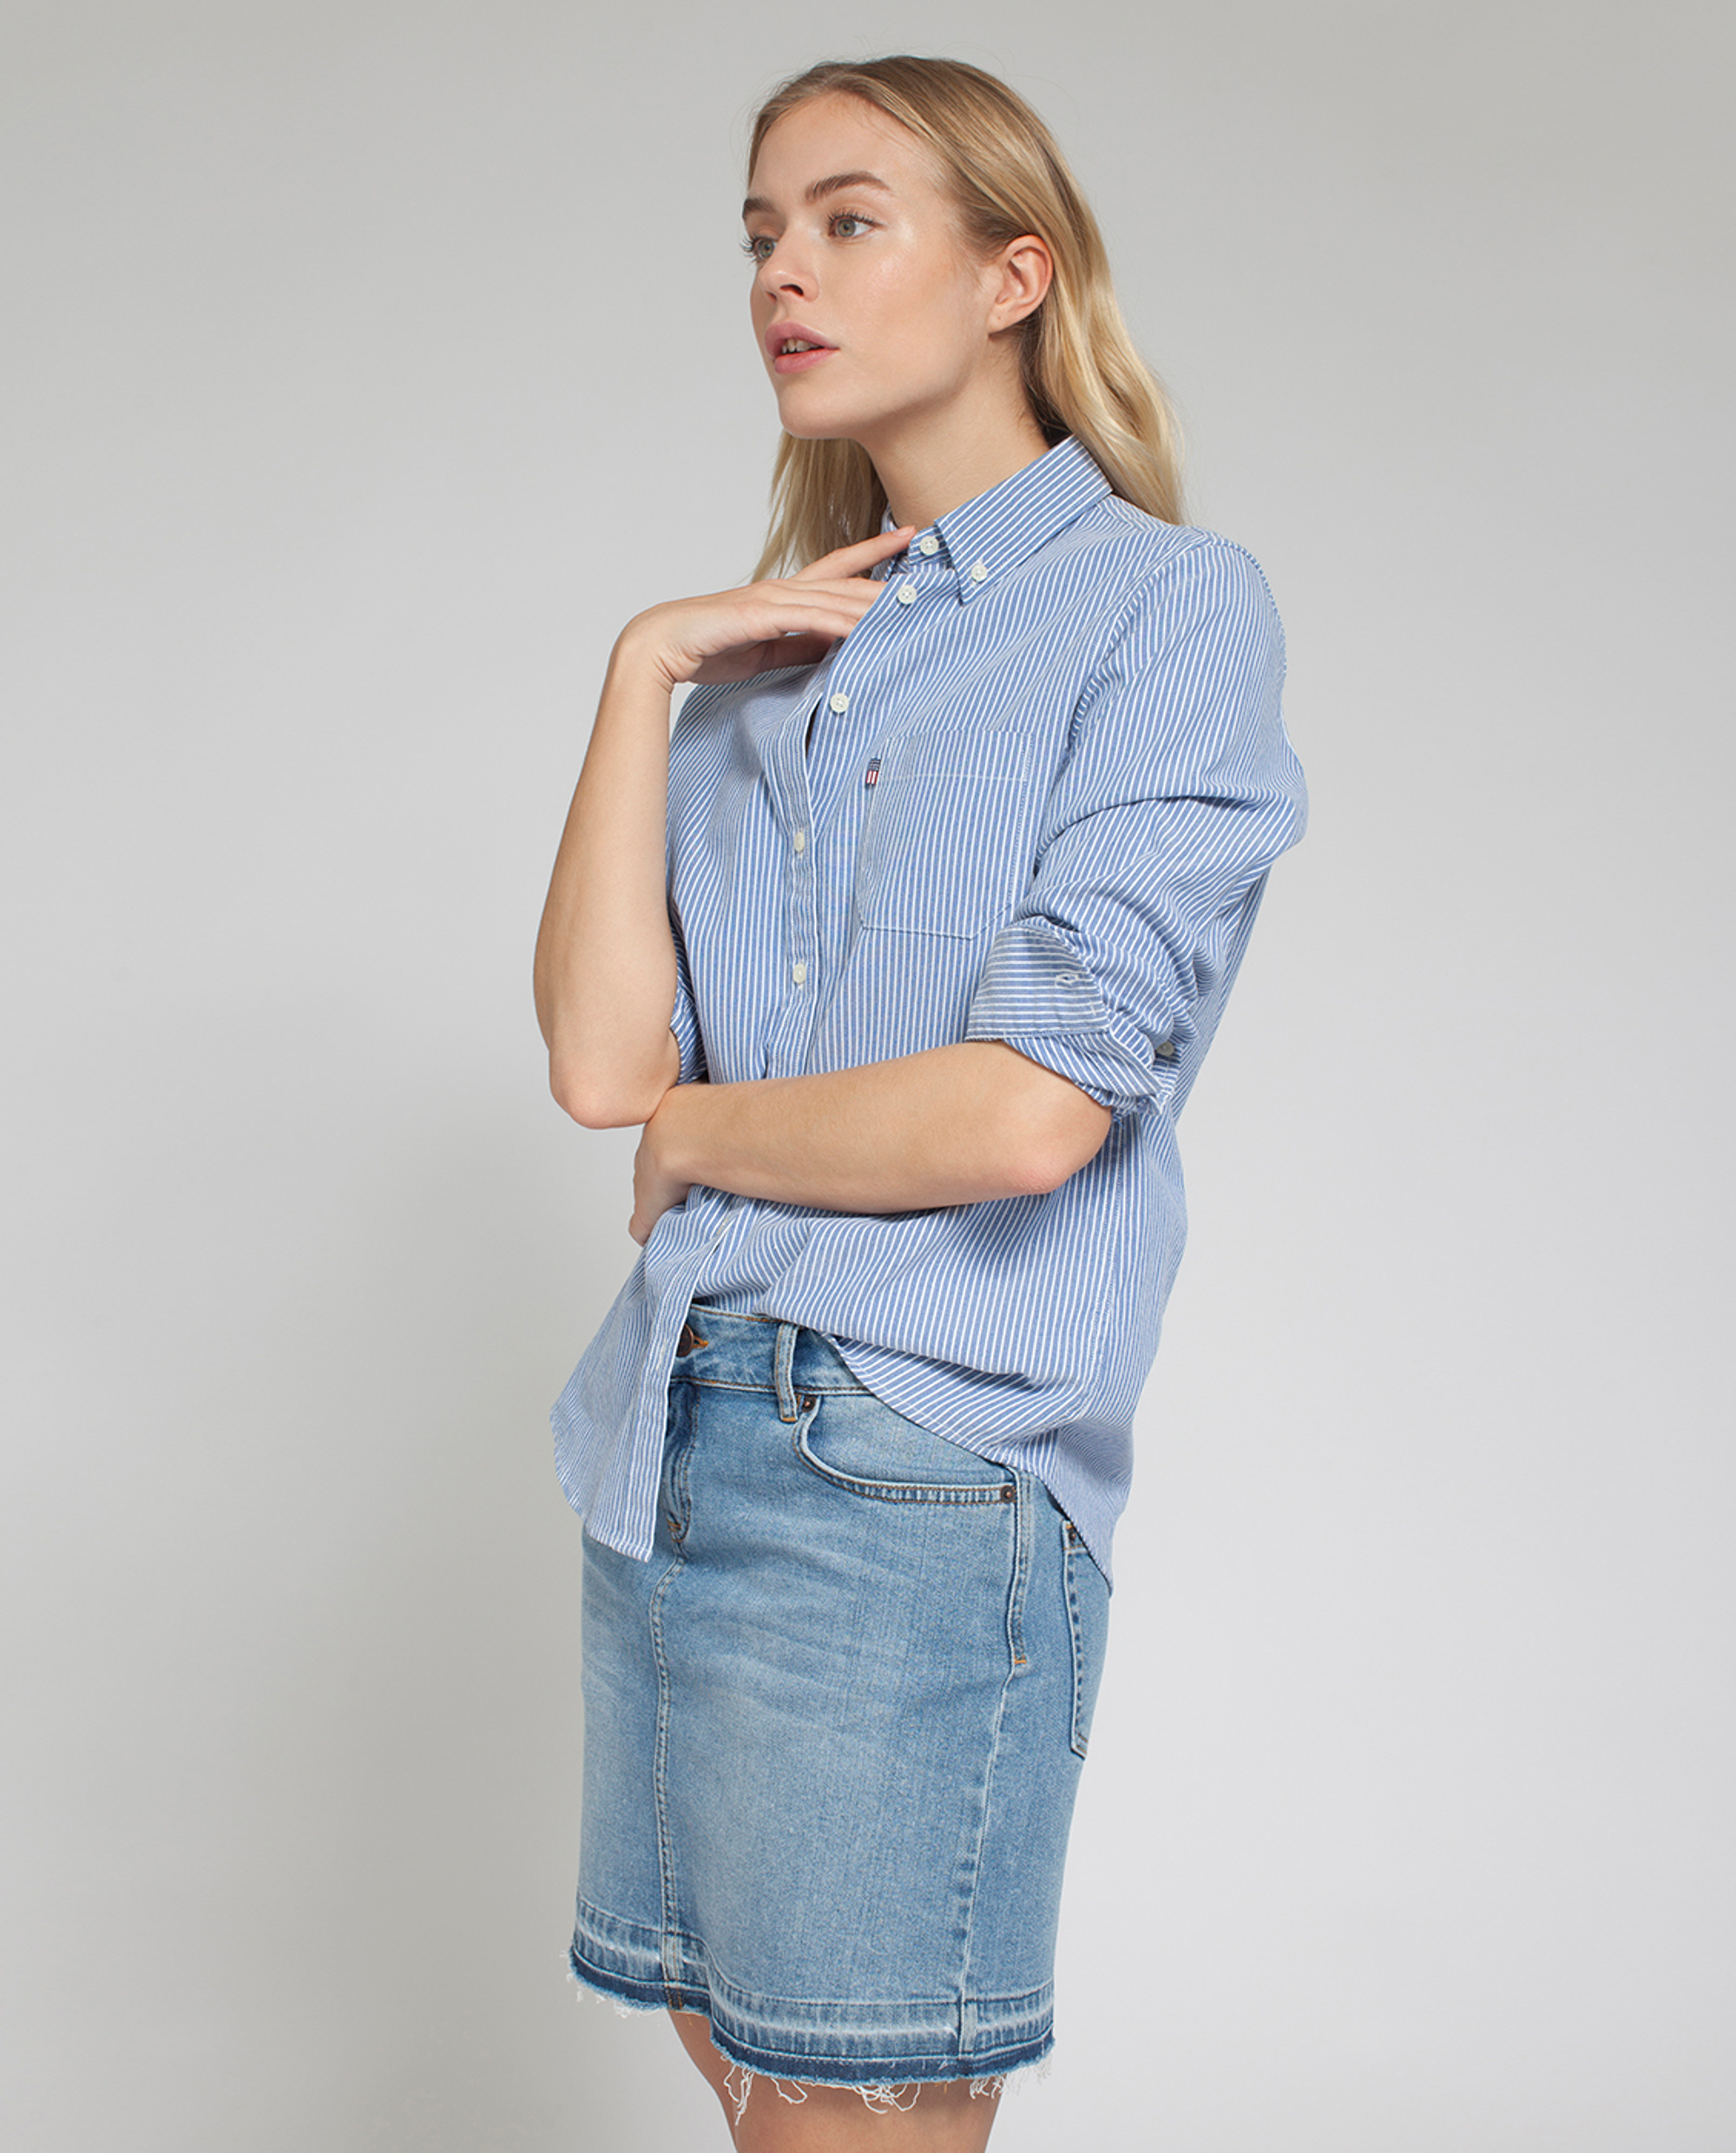 Sarah Oxford Shirt, Blue/White